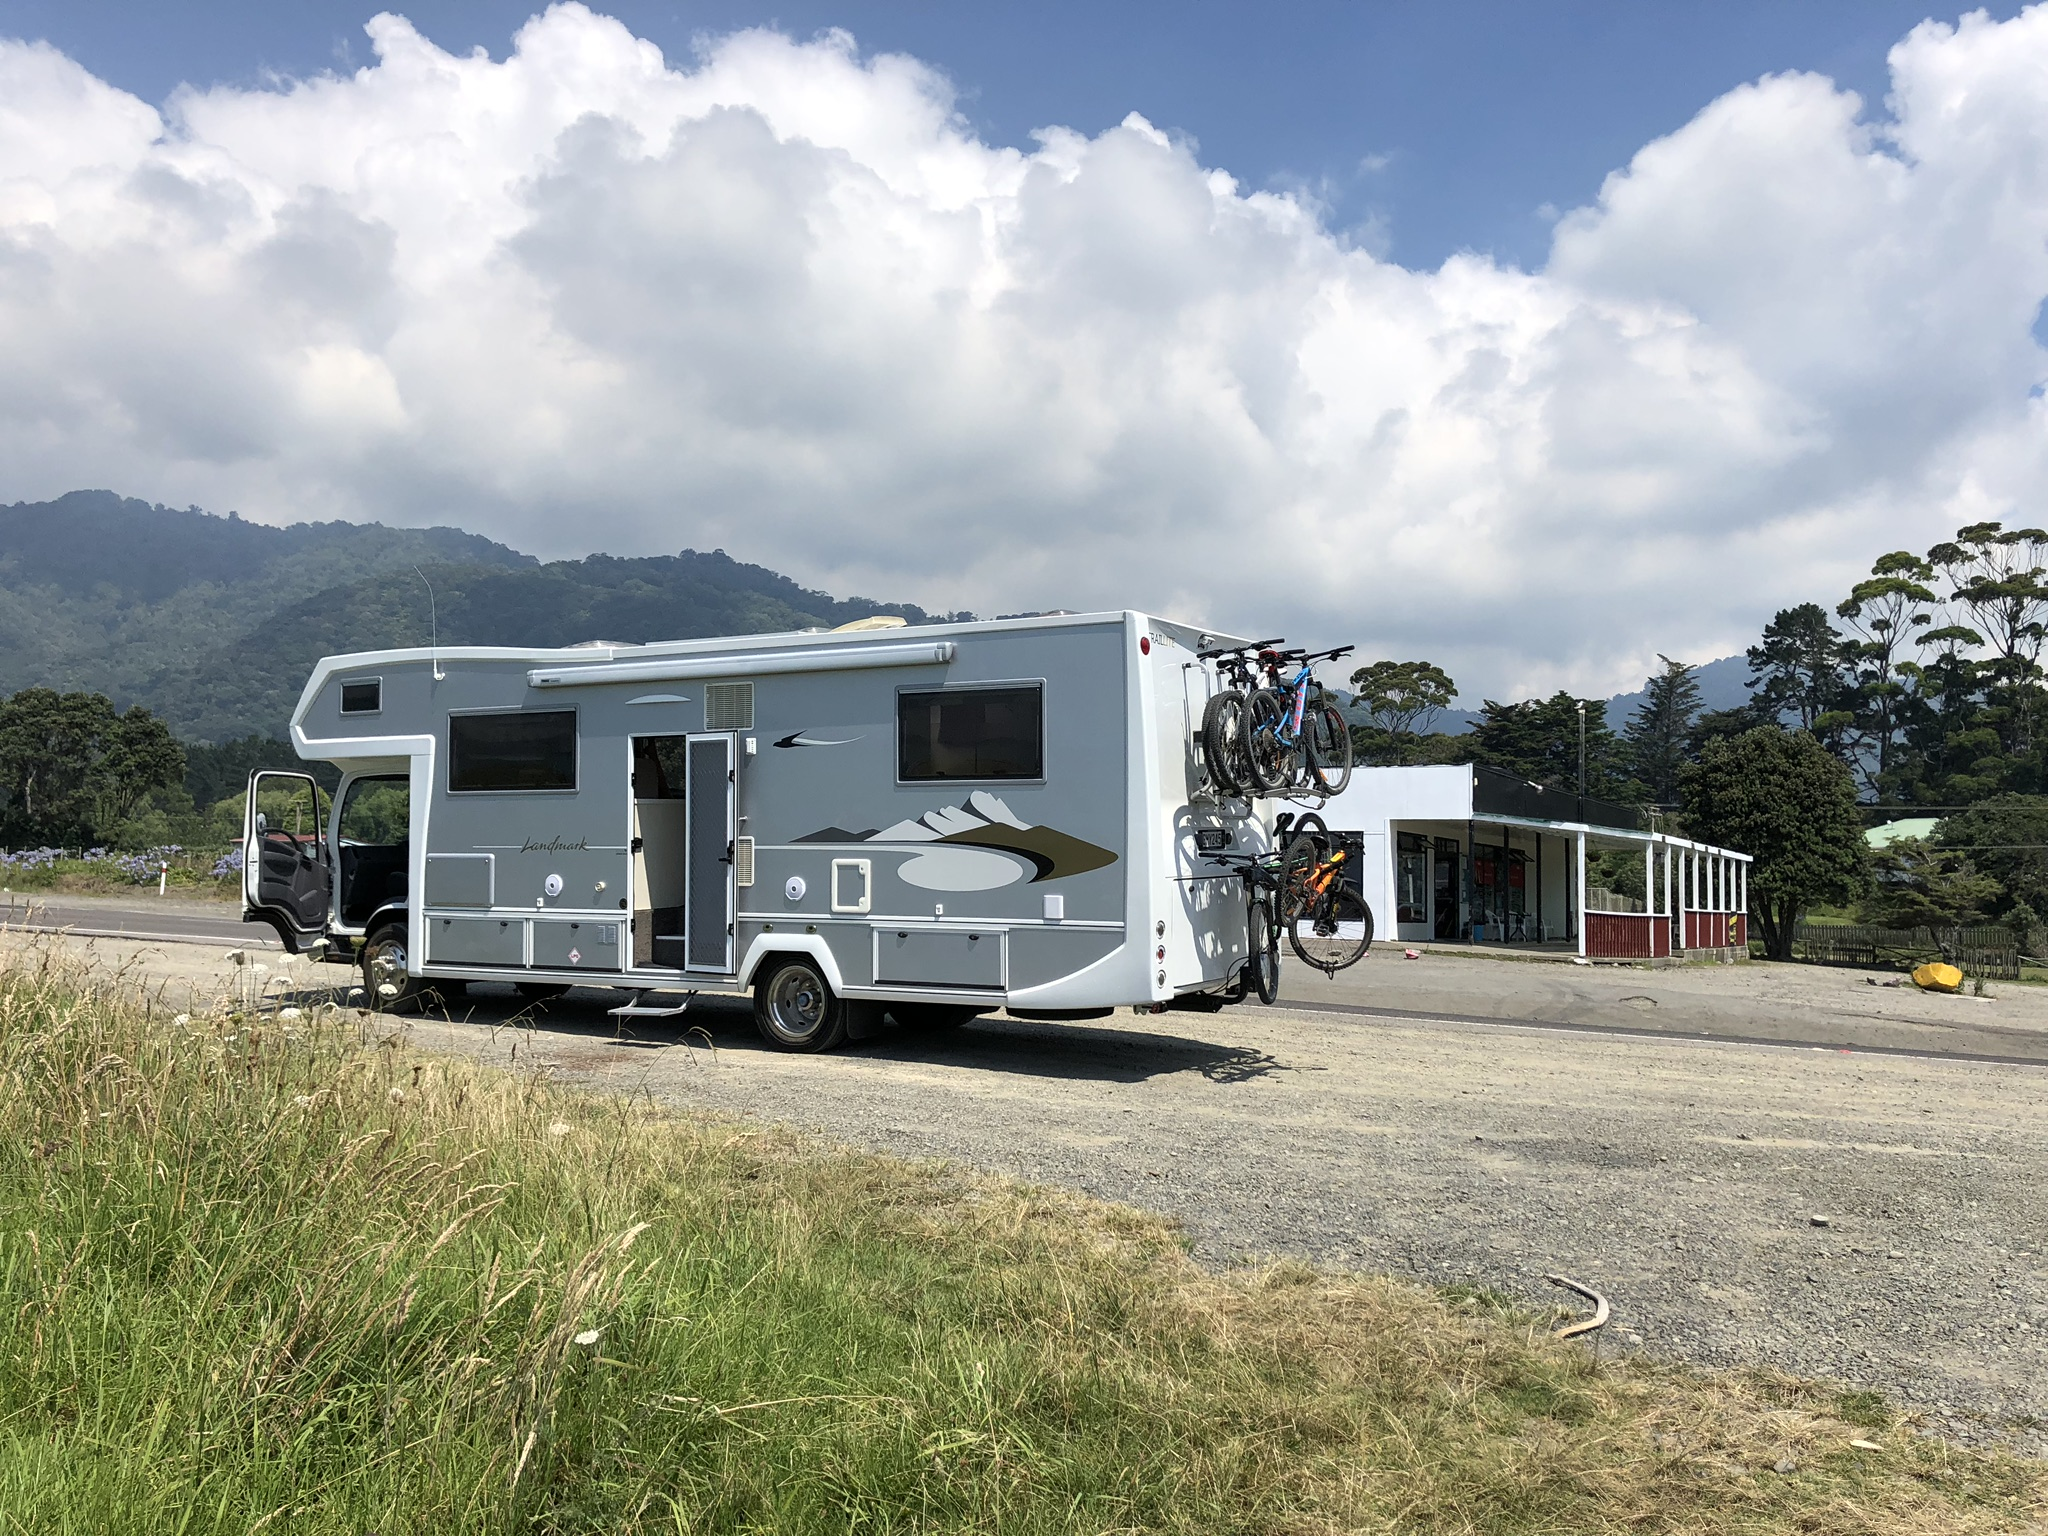 What is it like renovating a motorhome?